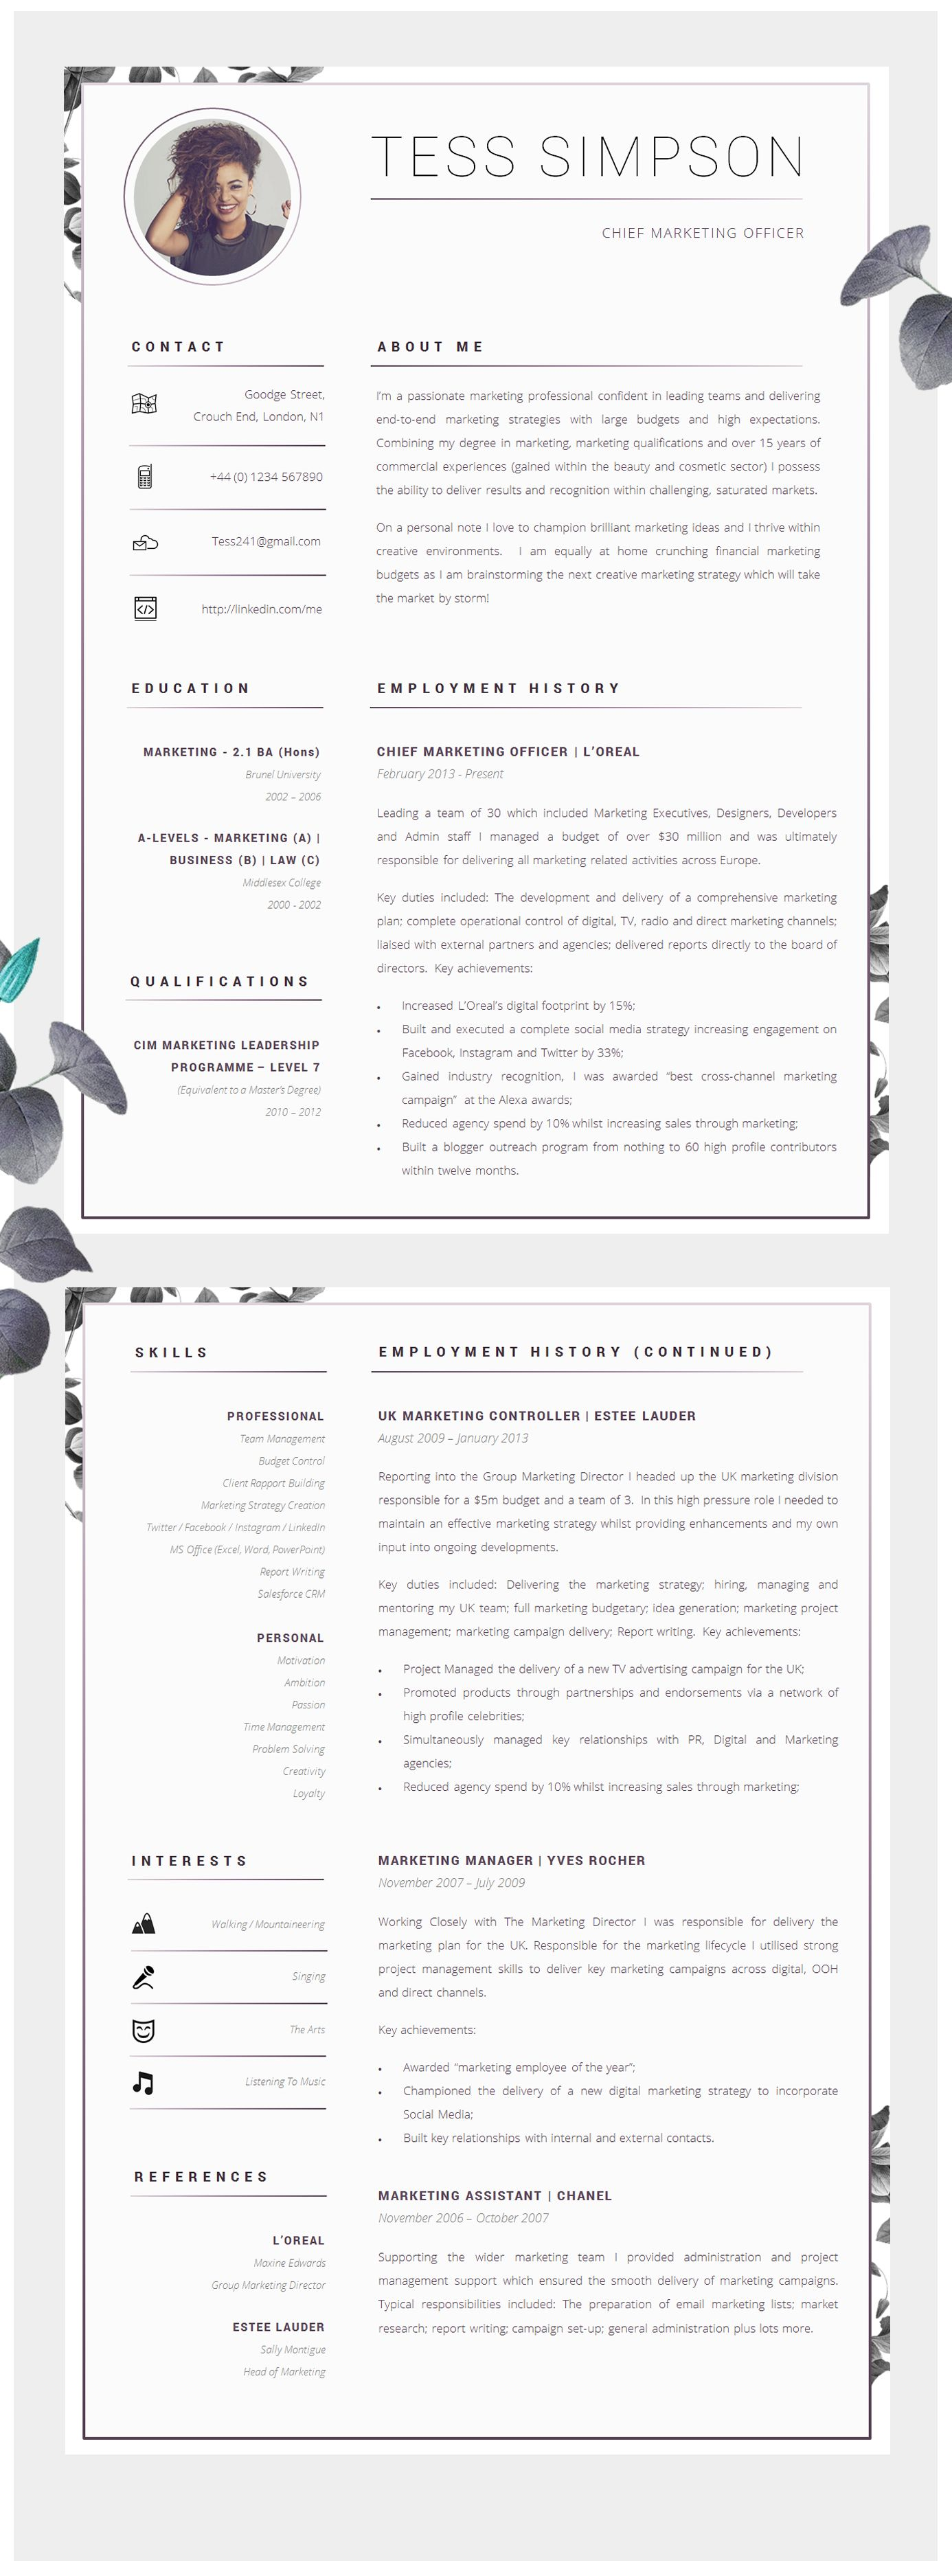 Resume For Fashion Designer Job Cv Template Creative Resume Template Two Page